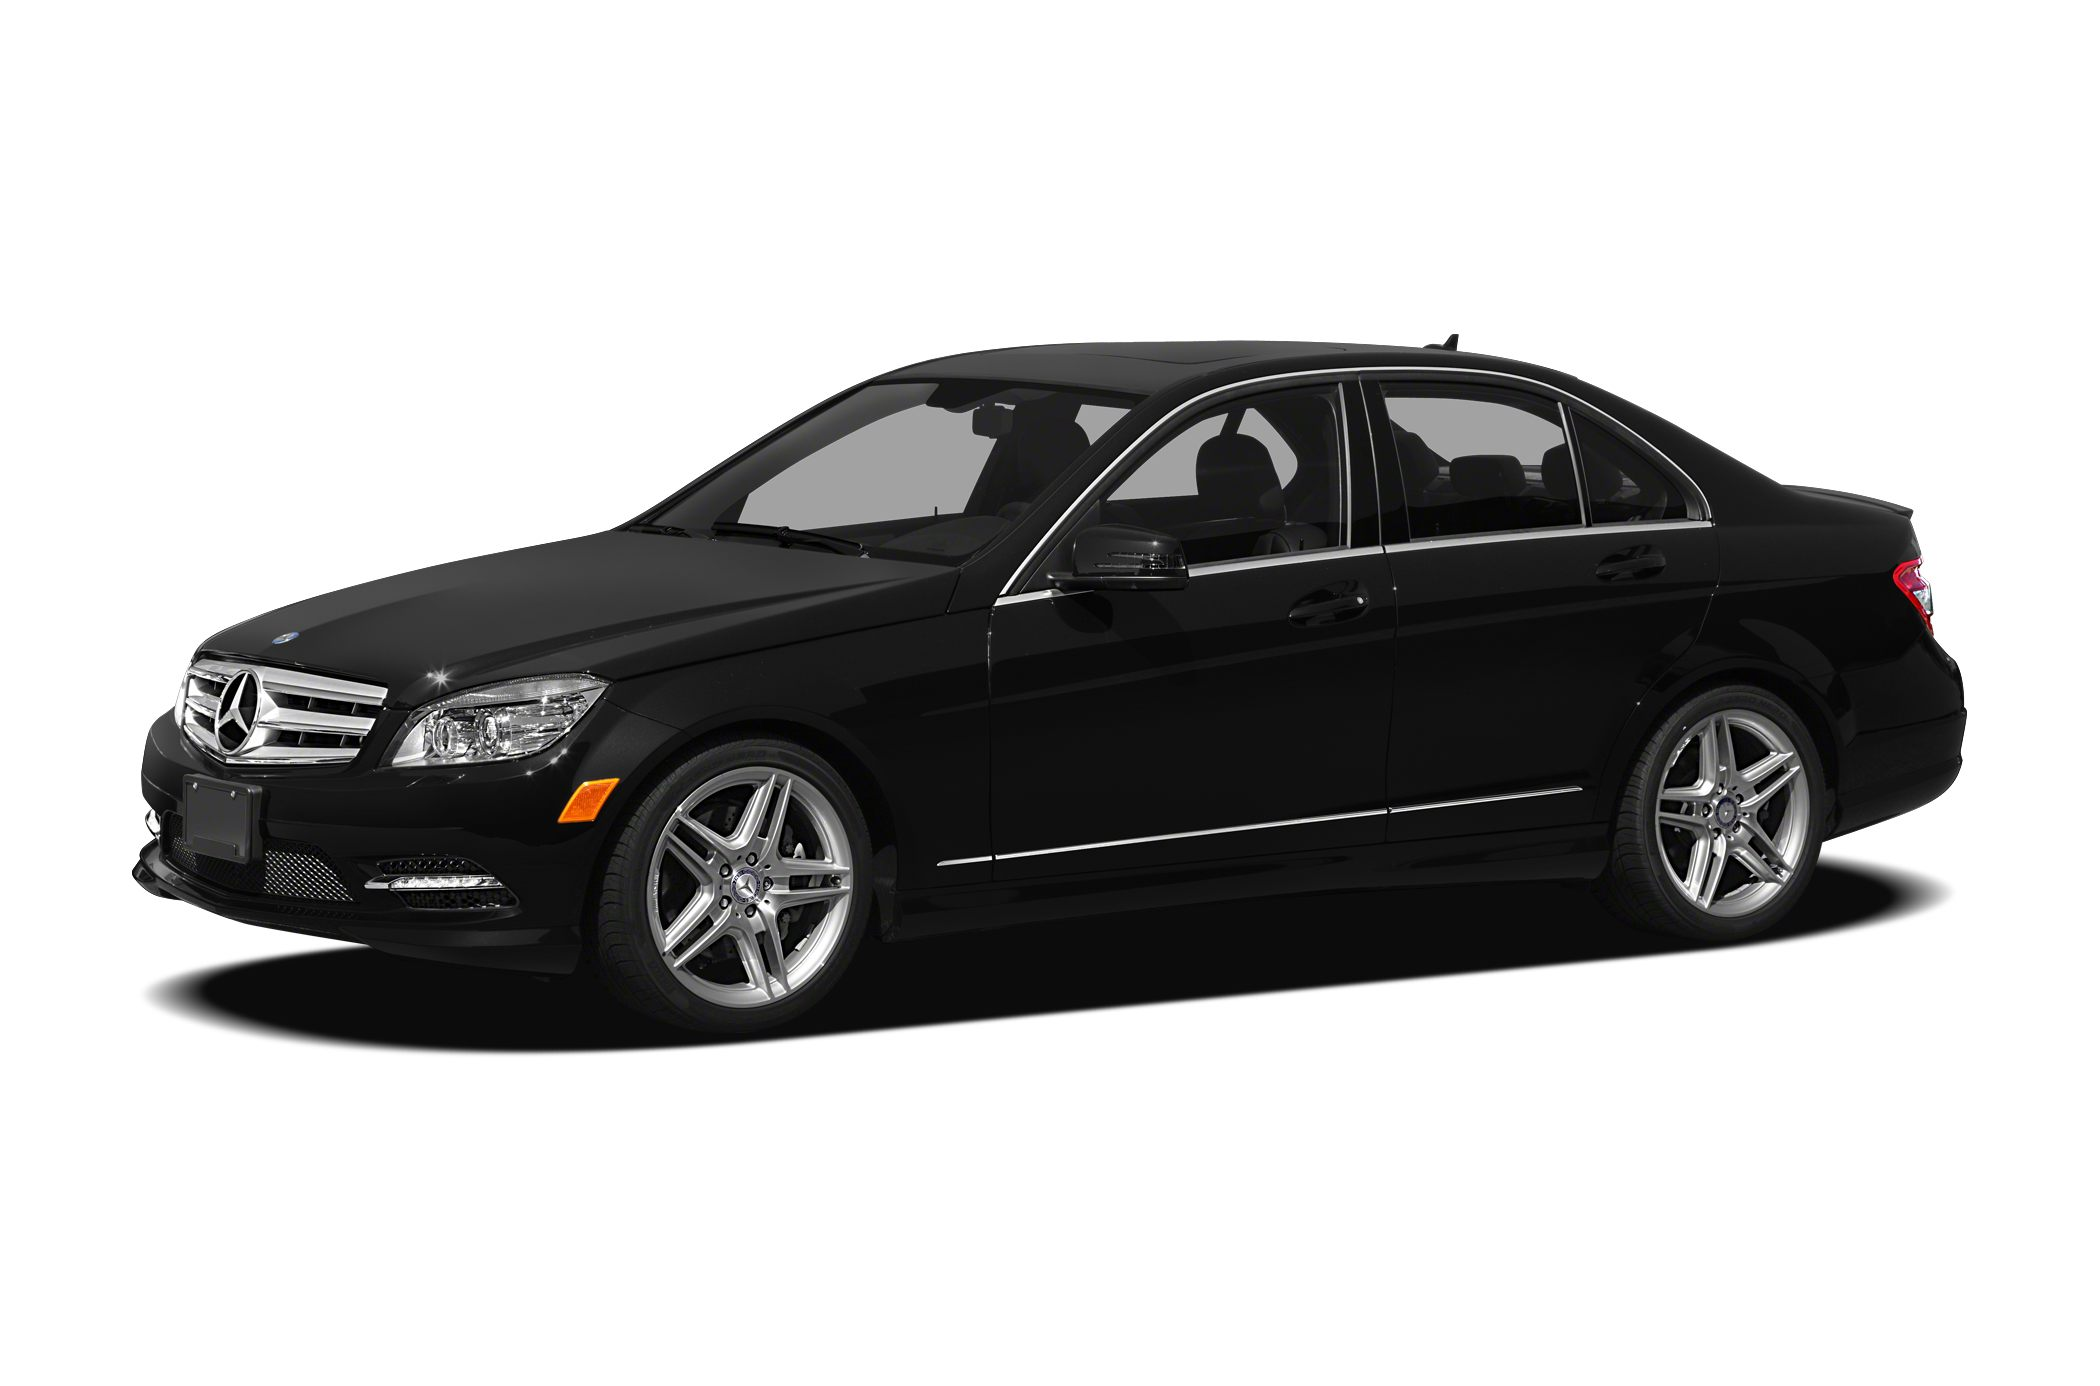 2011 MERCEDES C-Class C 350 Sport Prices are PLUS tax tag title fee 799 Pre-Delivery Service